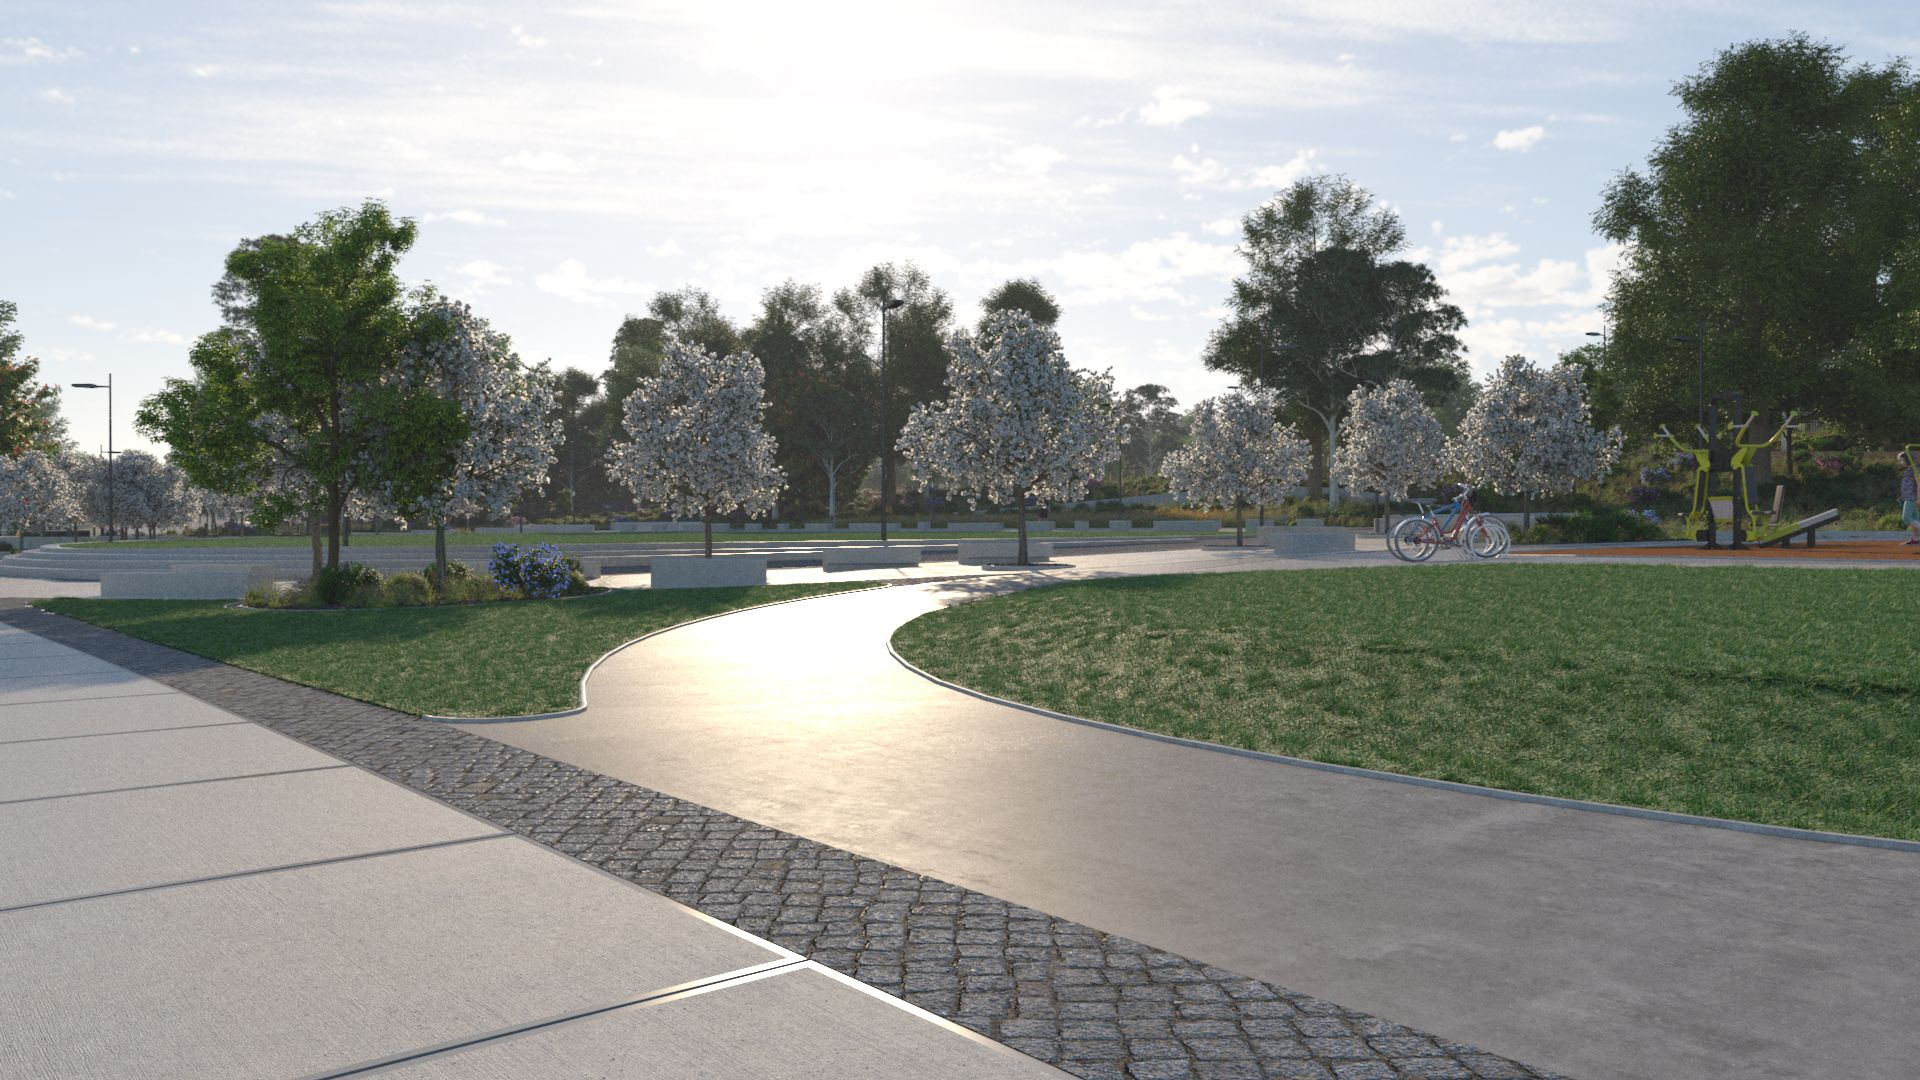 3D image of central park area